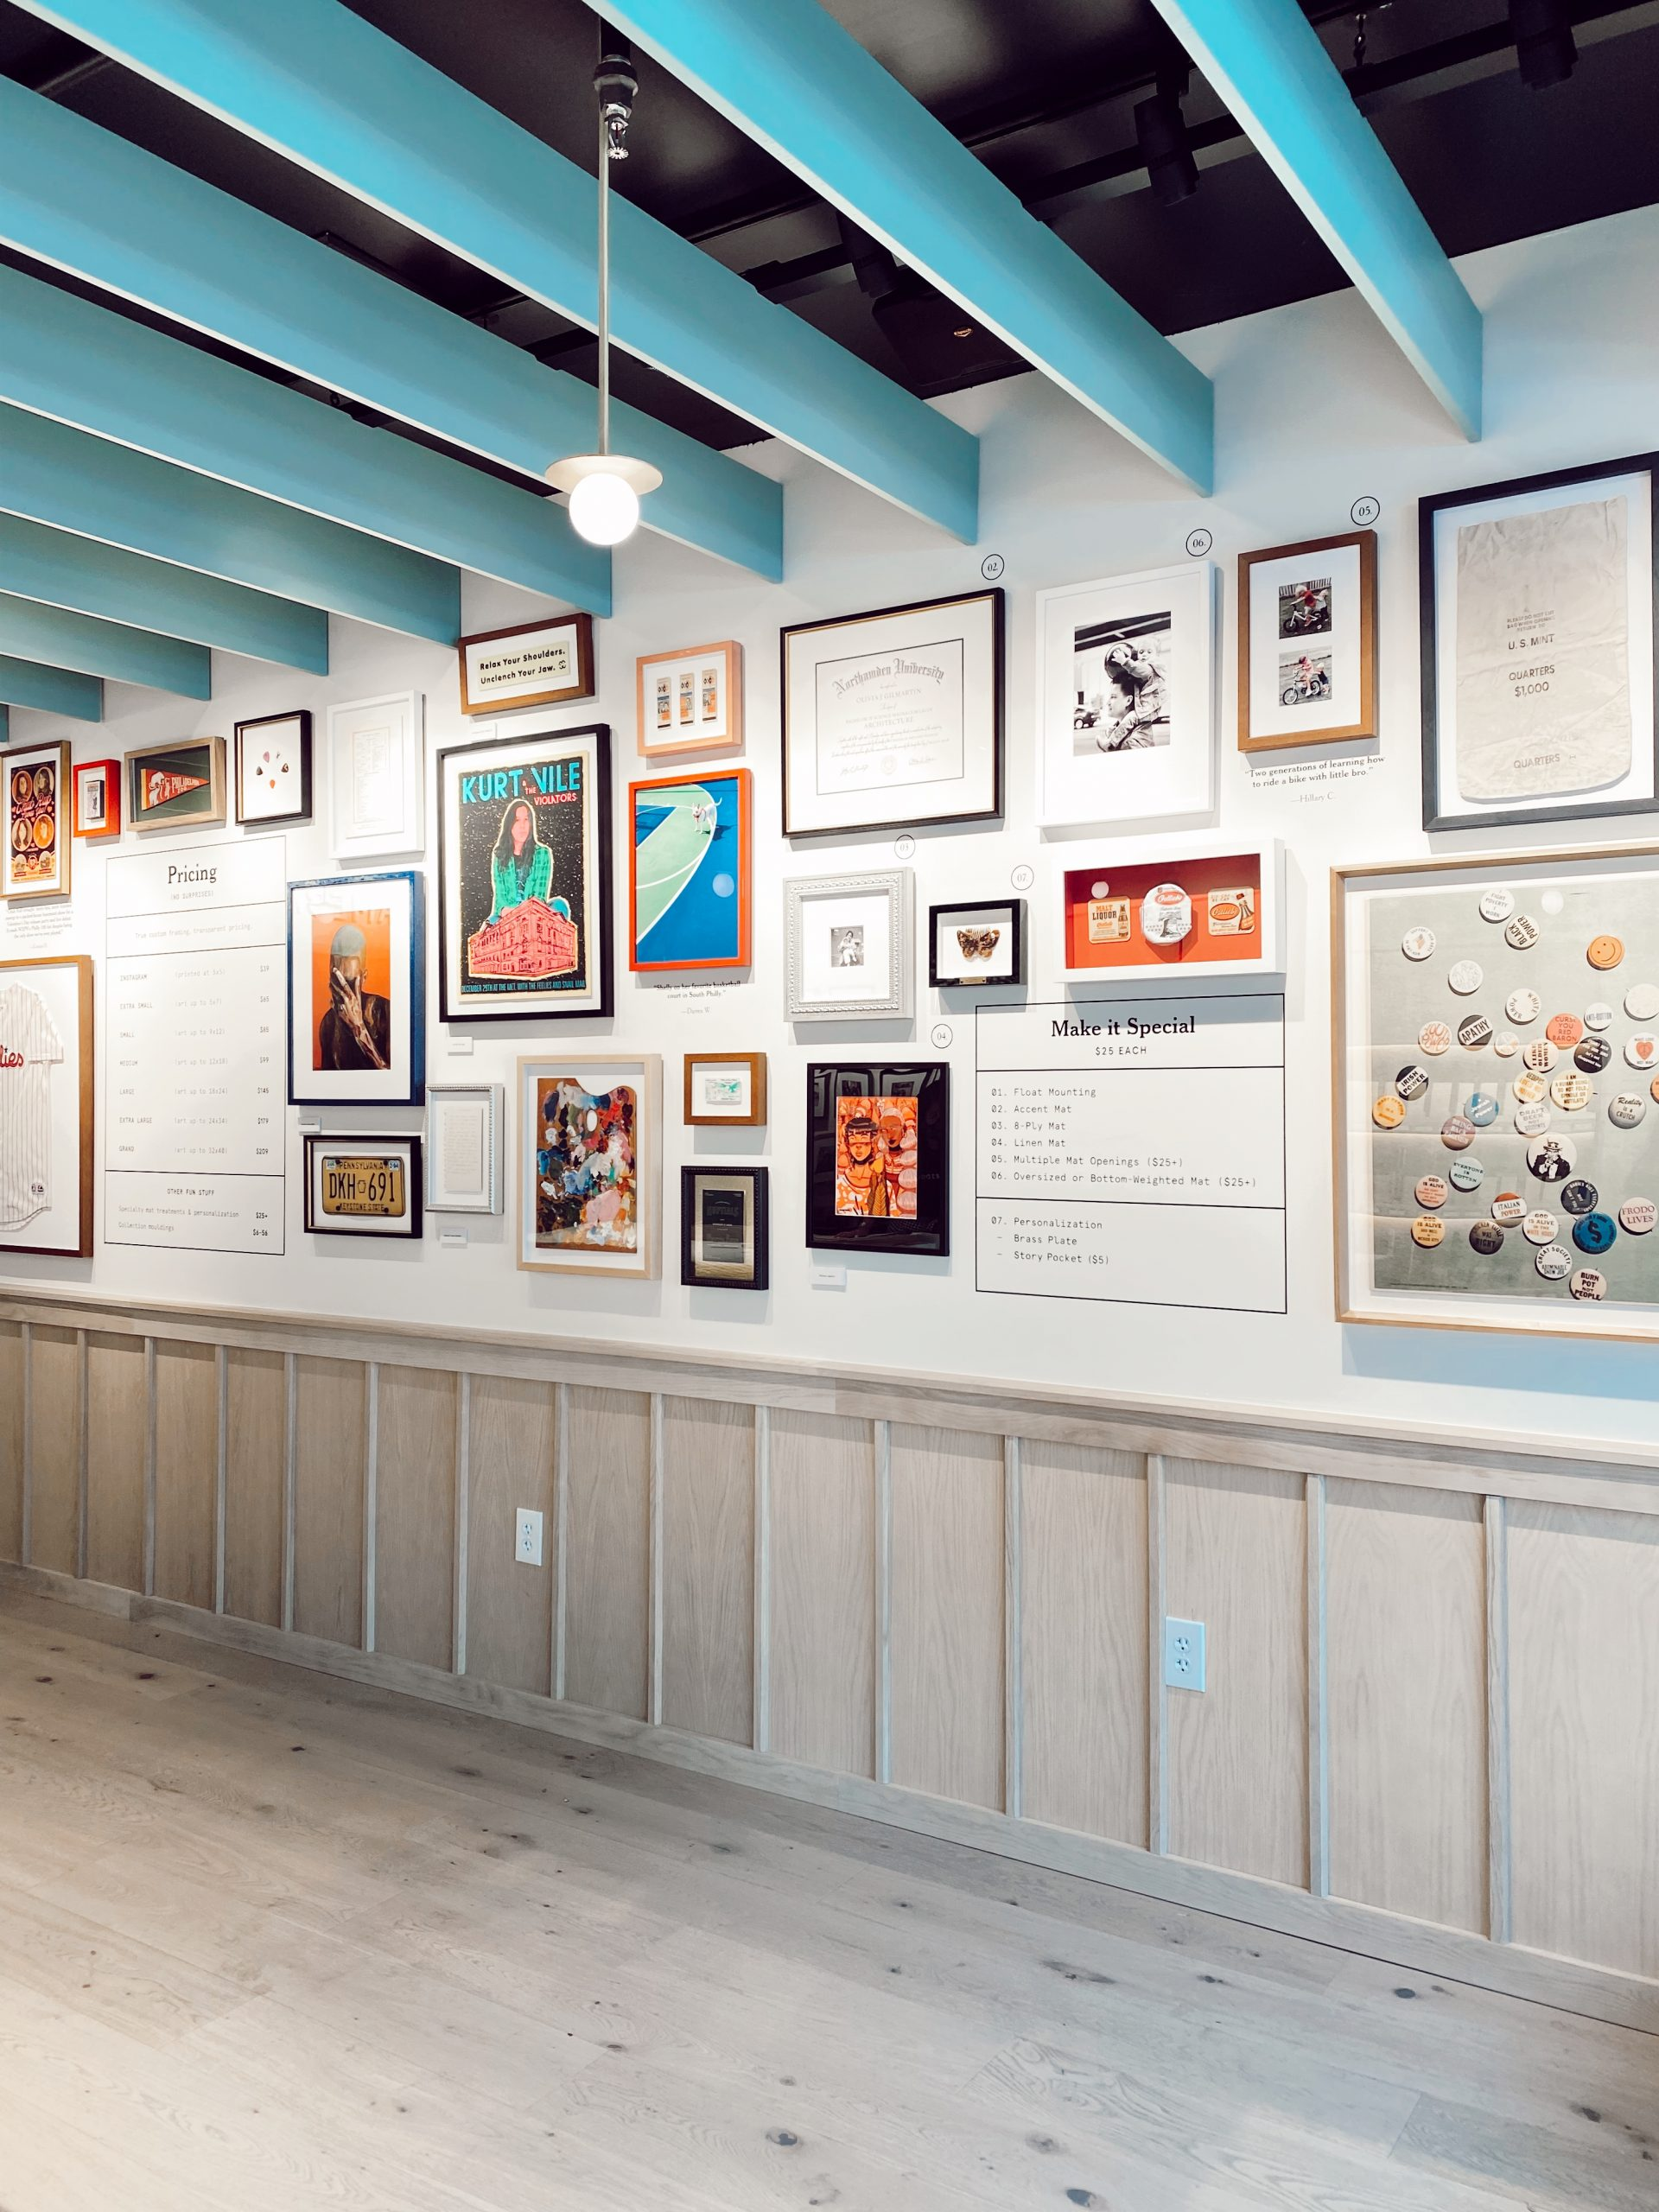 inside the Framebridge Store with brightly colored frames in a gallery on the wall.